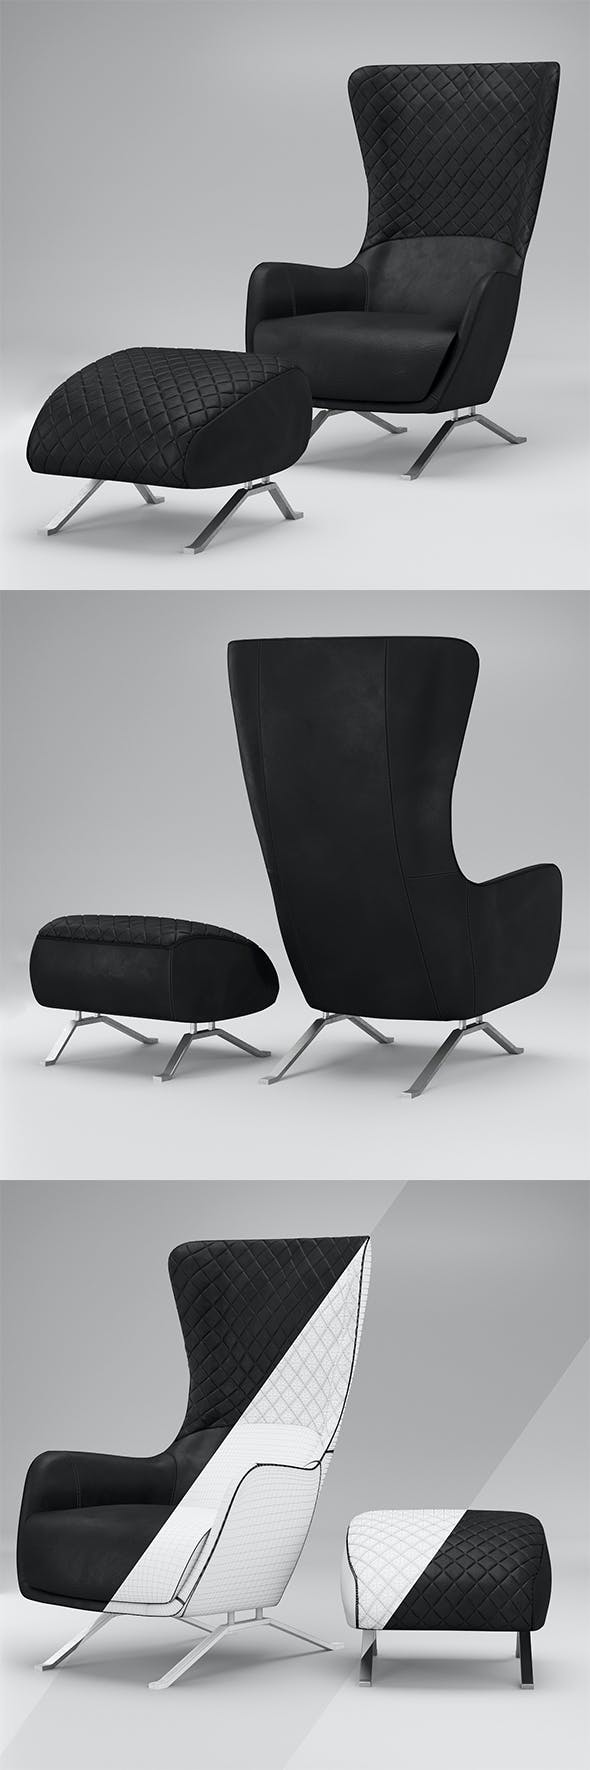 Chair Sin Seaty - 3DOcean Item for Sale